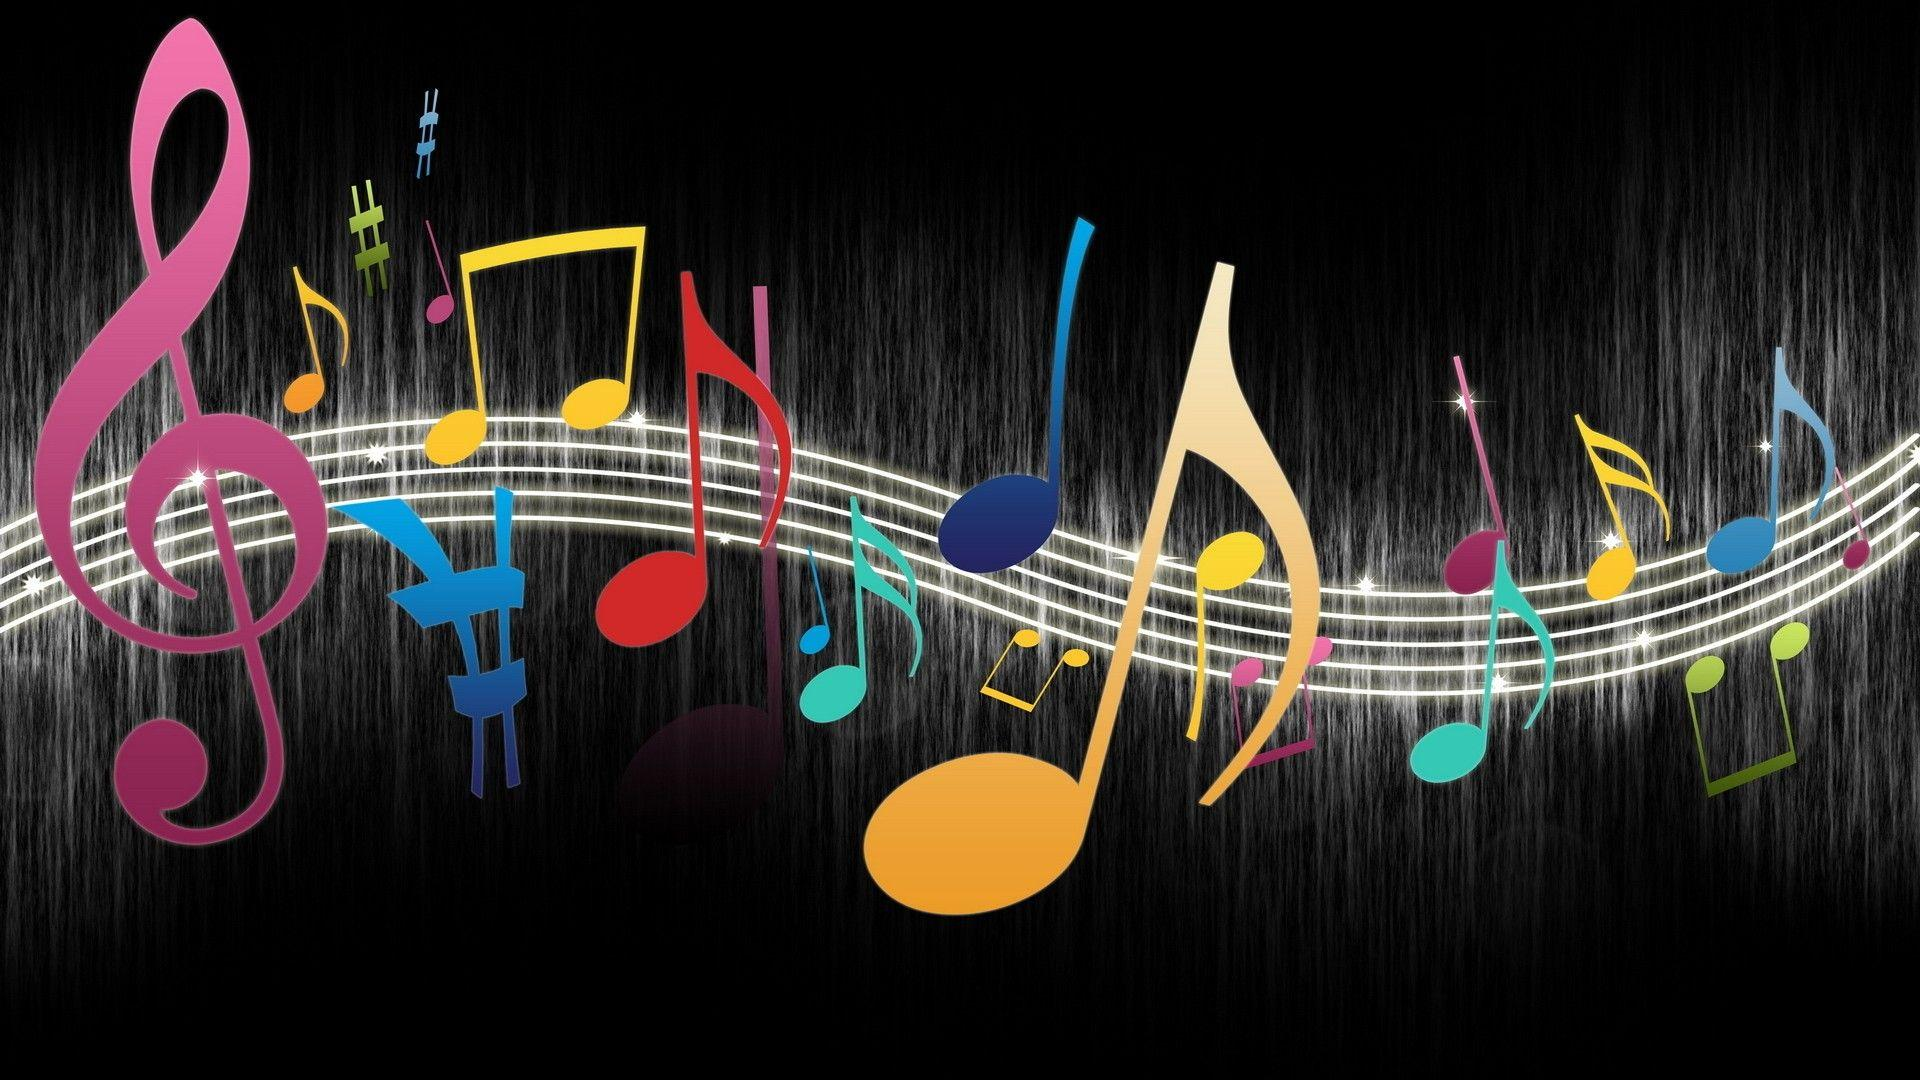 Music Notes Wallpapers High Quality